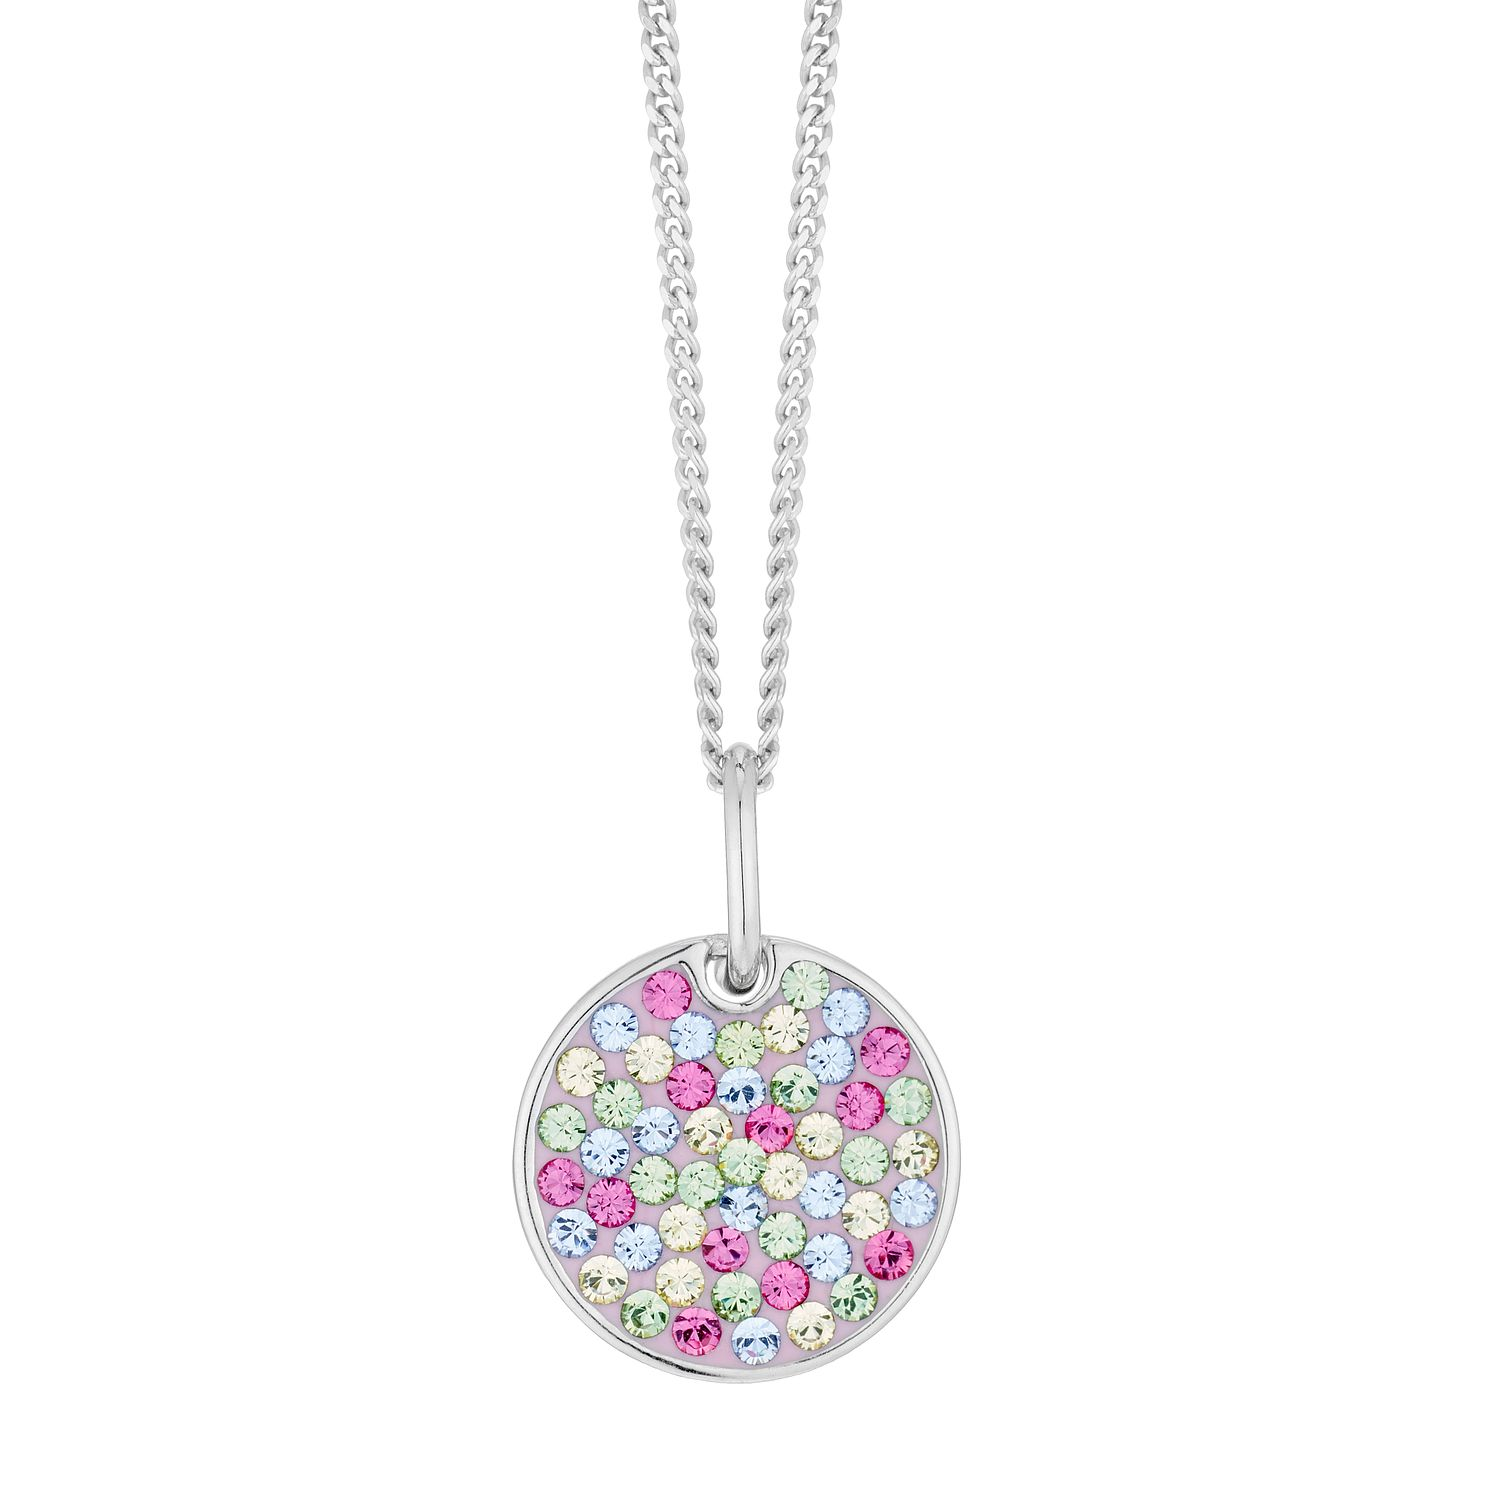 Evoke Rhodium Plated Multicolour Crystal Disc Pendant - Product number 4289919